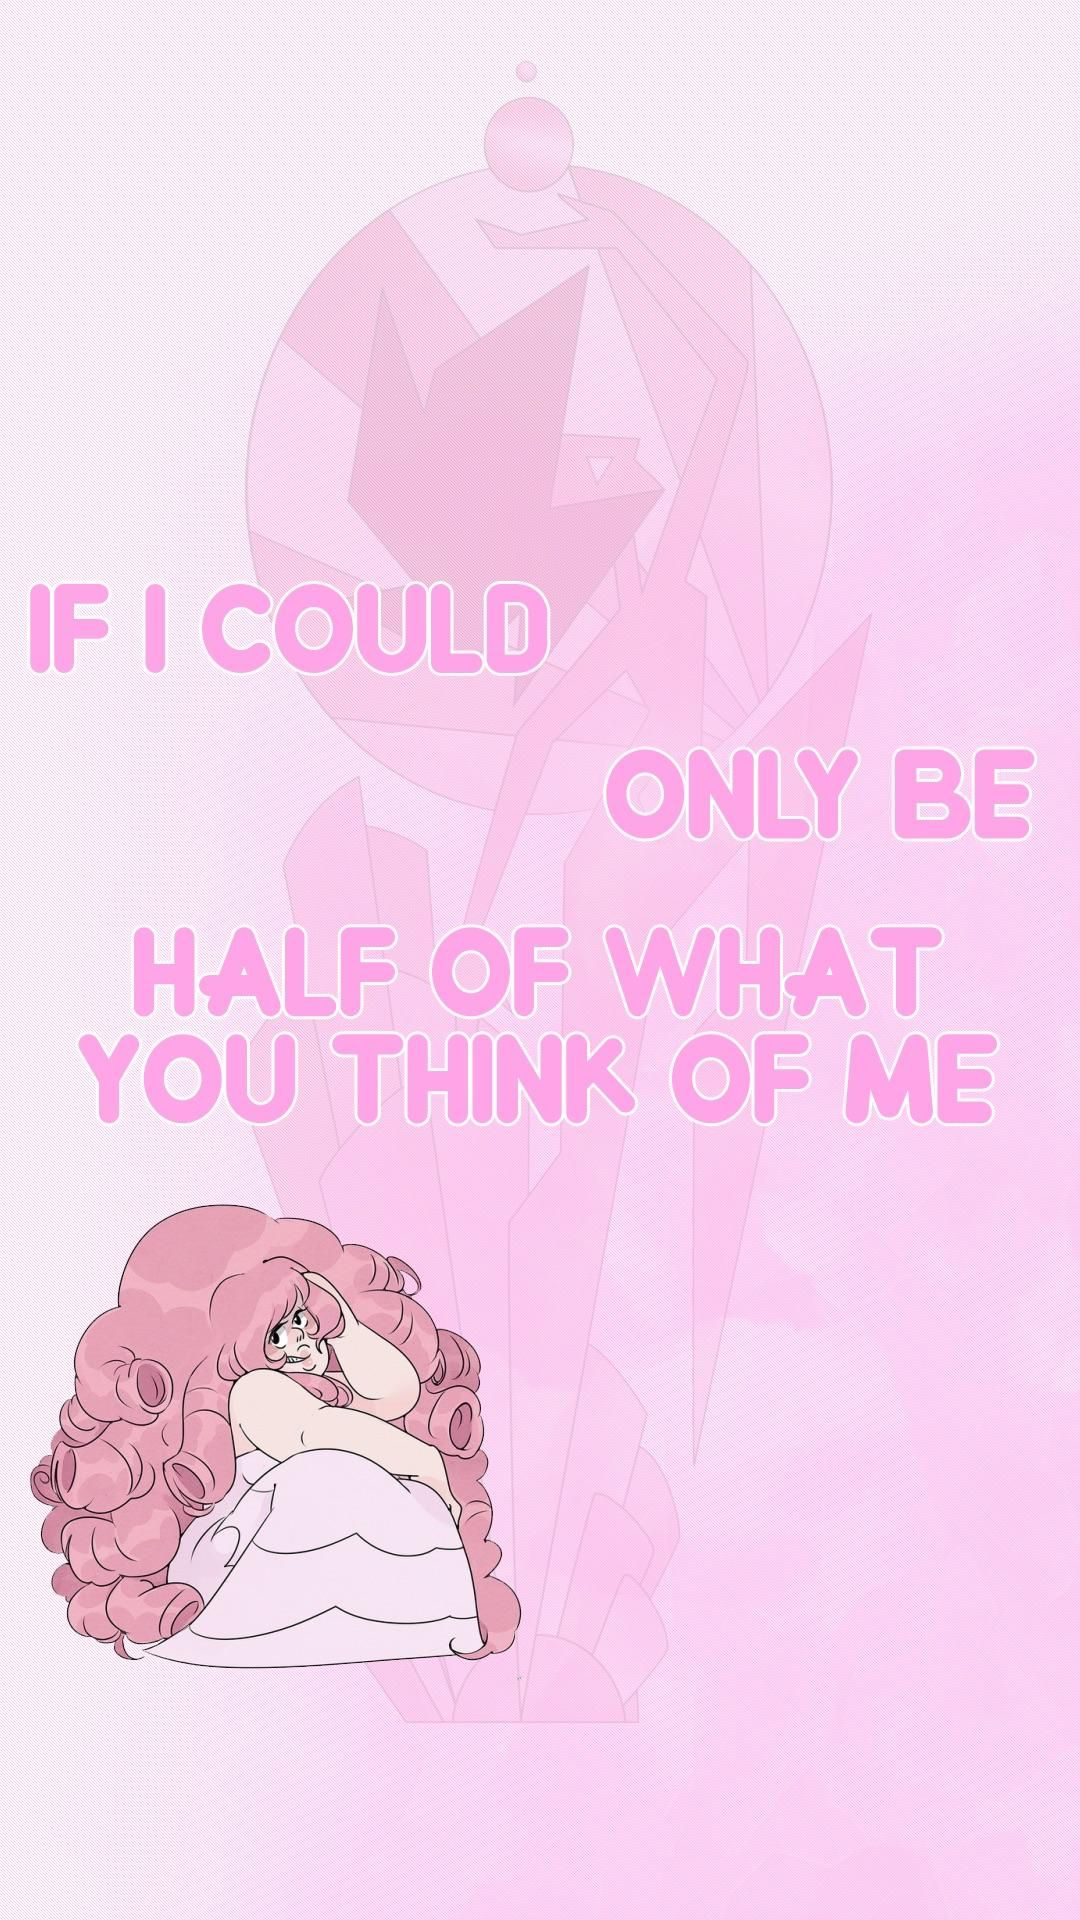 Wife Requested A Rose Quartz Steven Universe Lockscreen Wanted